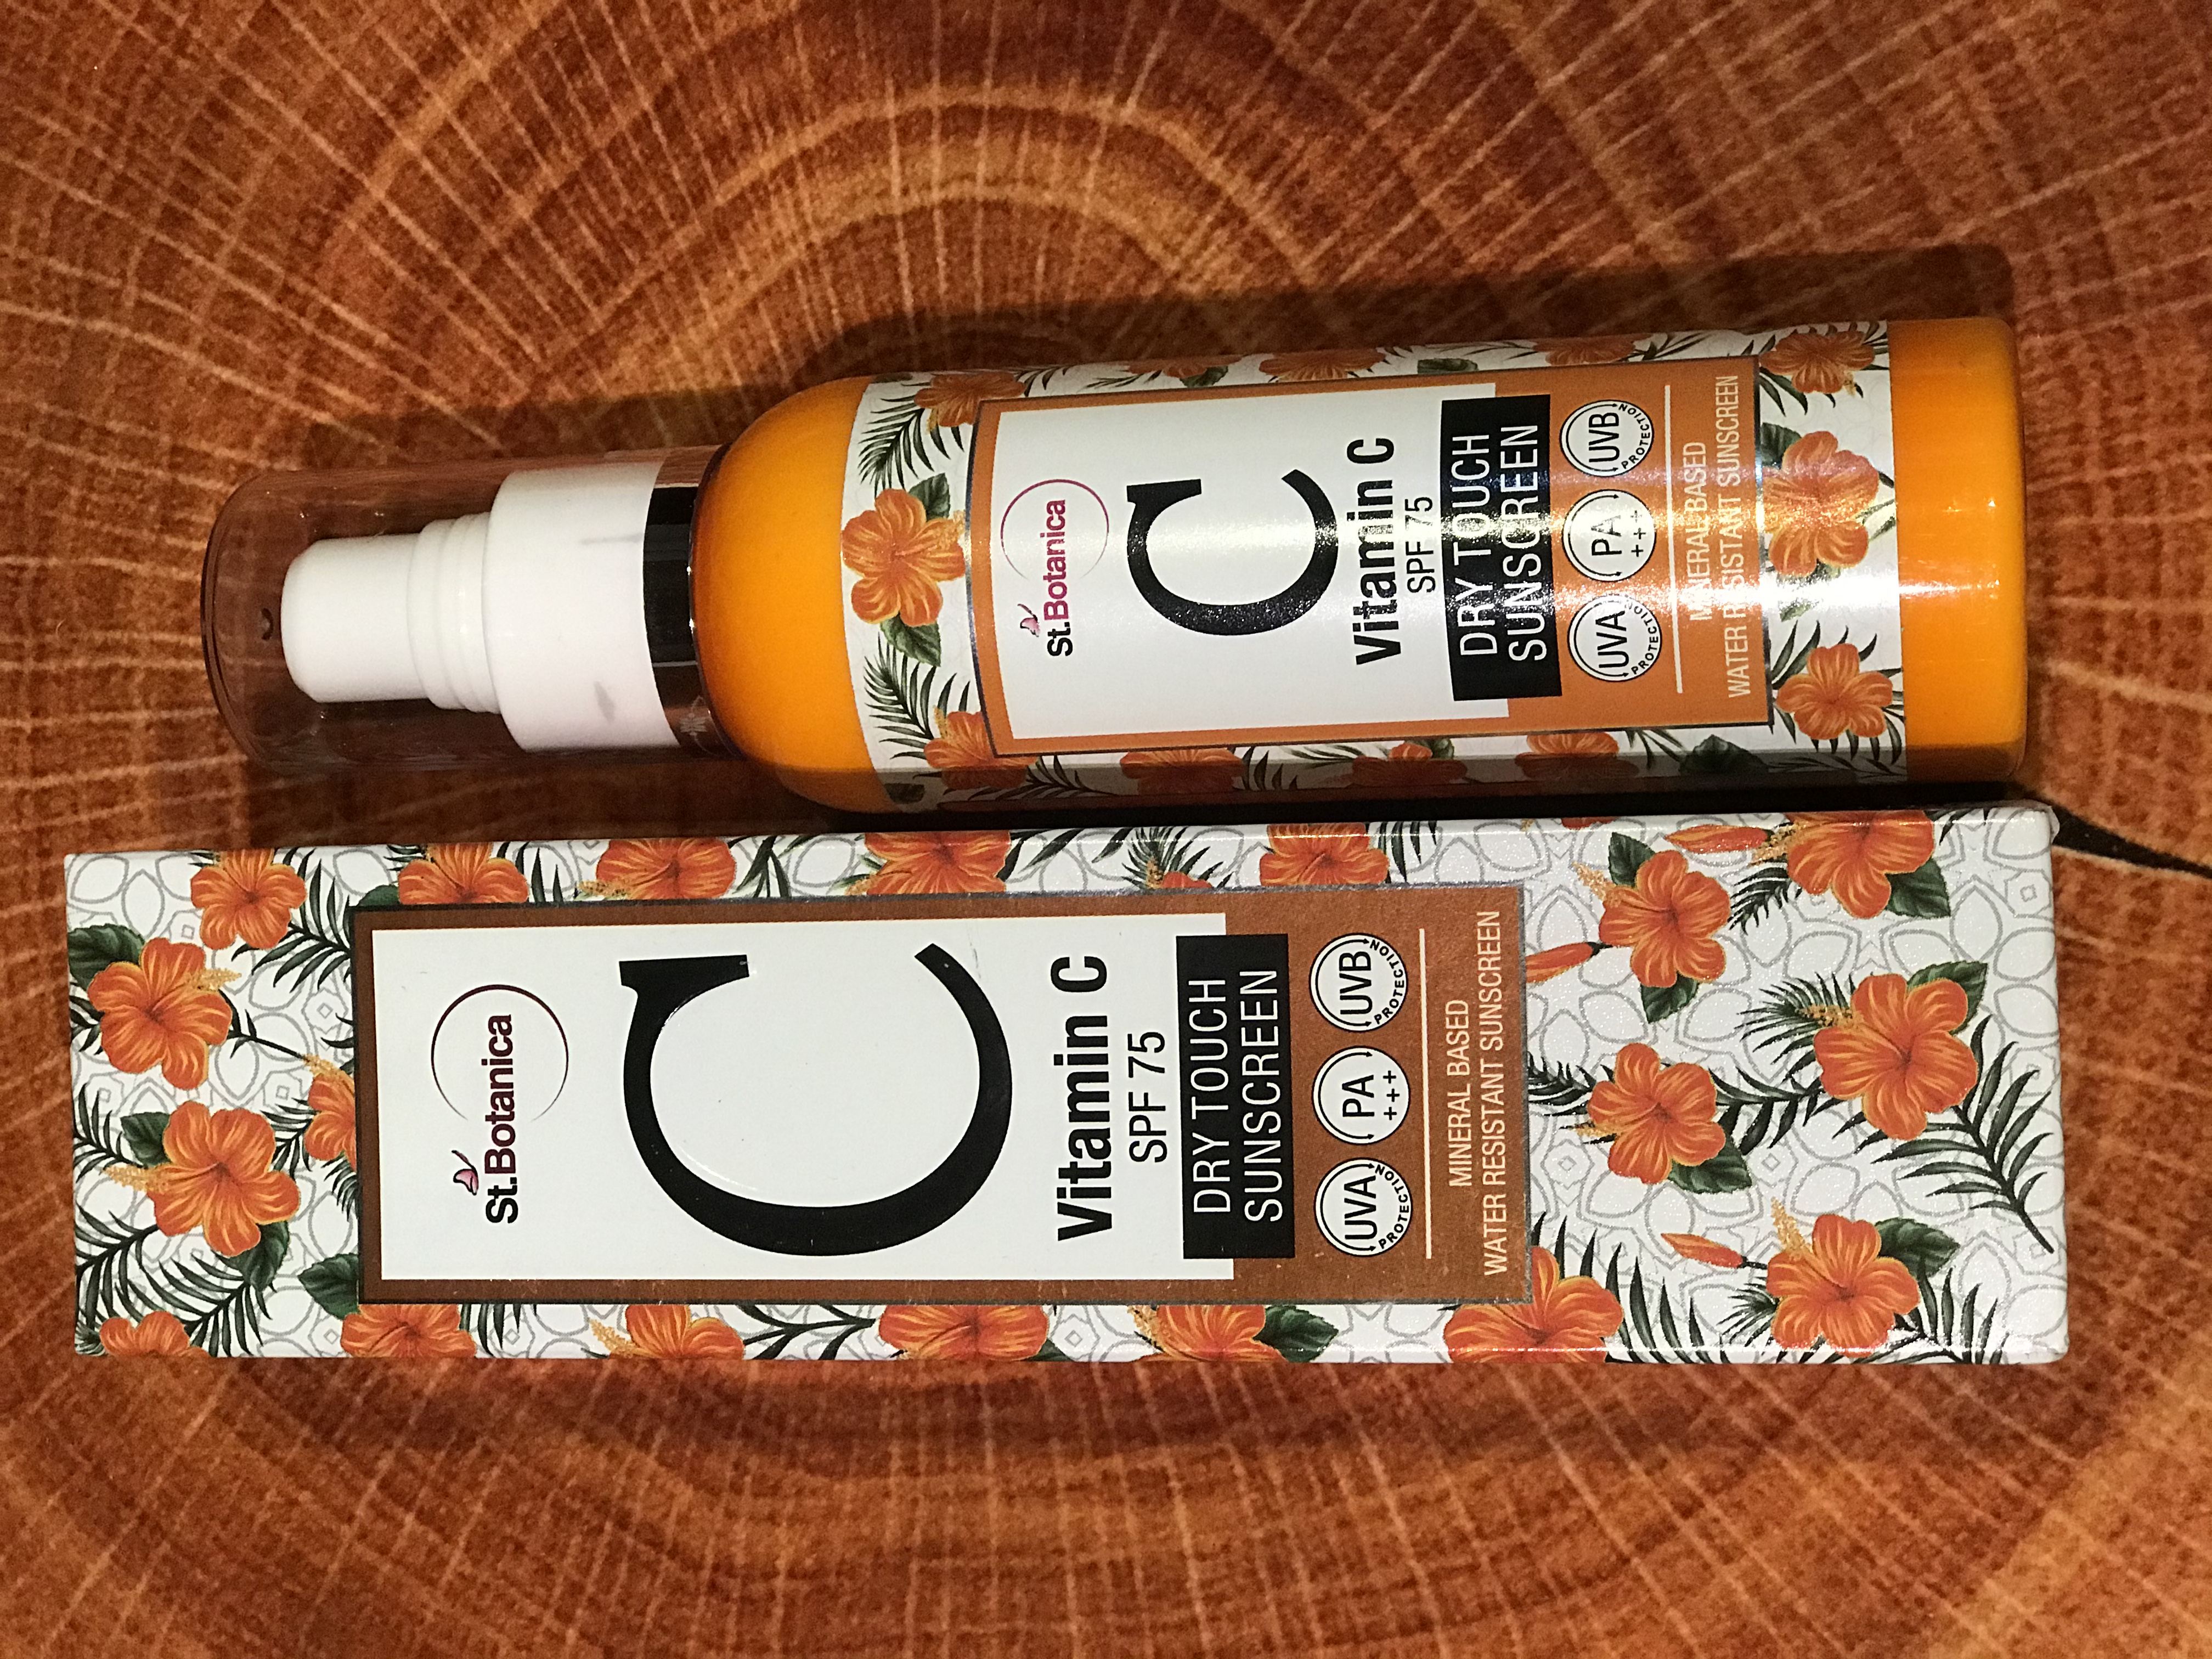 St.Botanica Vitamin C SPF 75 Dry Touch Sunscreen UVA UVB PA+++ -Great For Oily Skin-By sunandi_kapoor